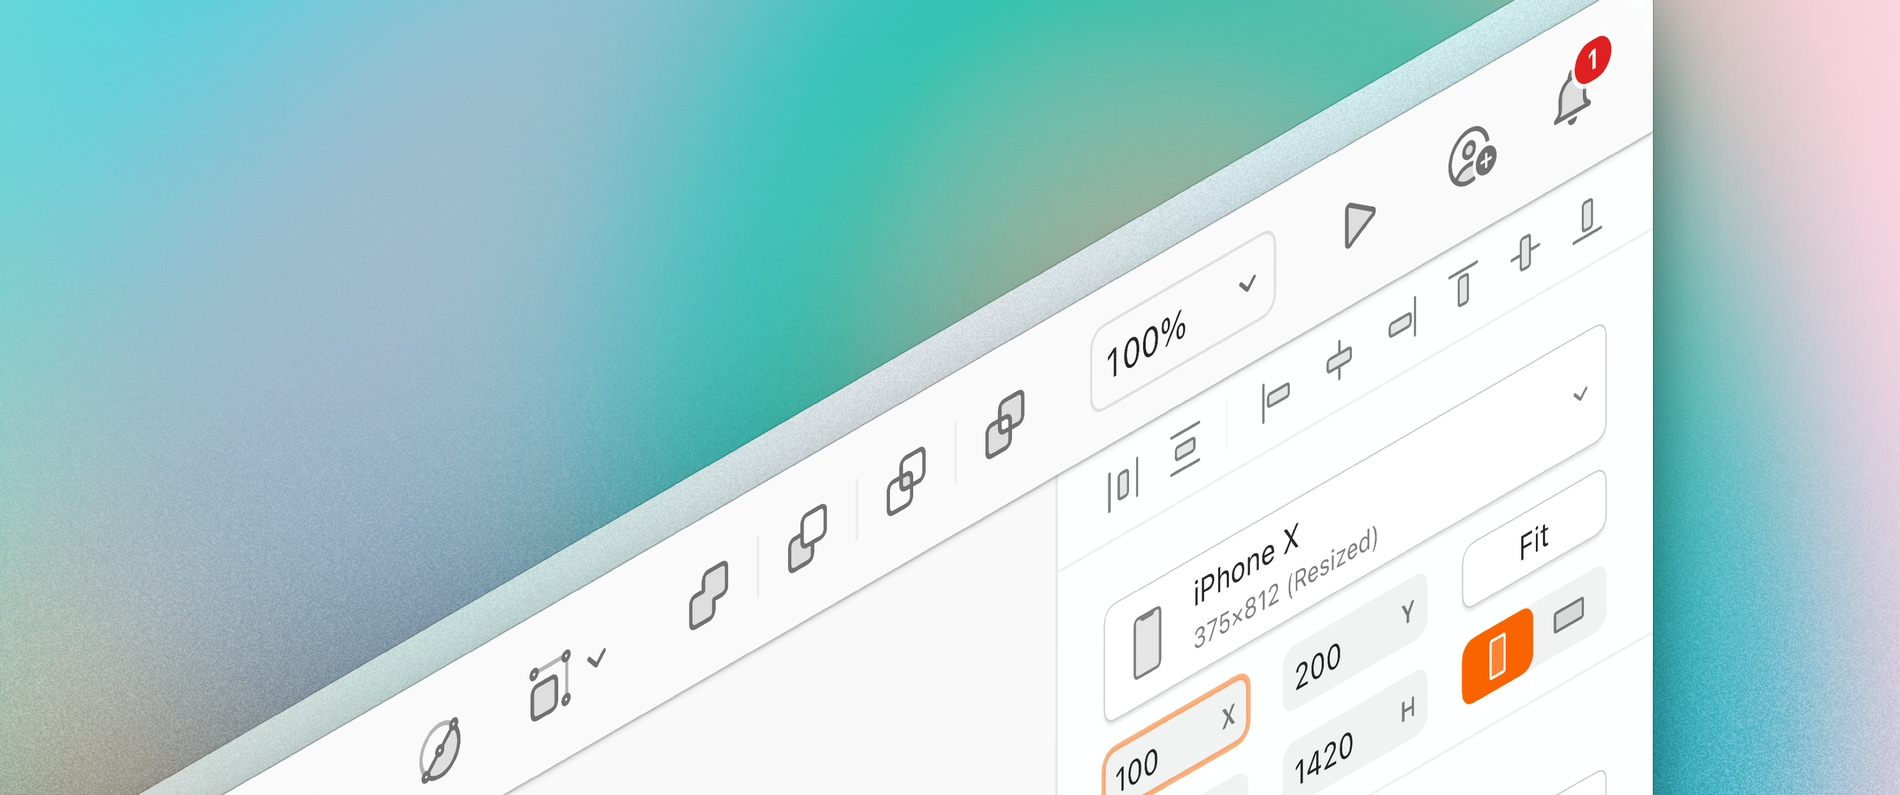 Header image showing a 3D view of the Sketch window with the updated toolbar icons.